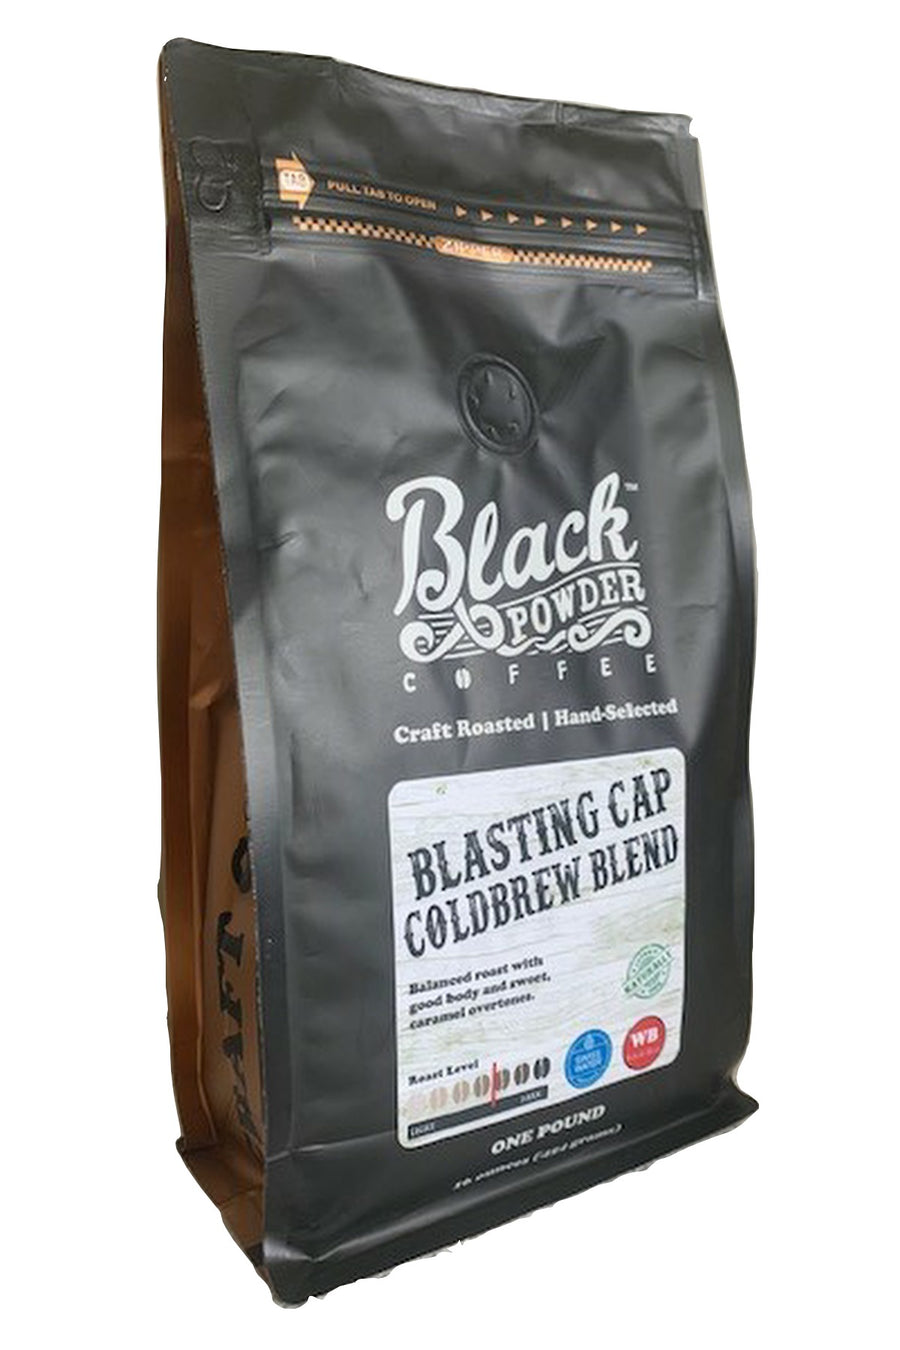 blasting cap cold brew coffee blend